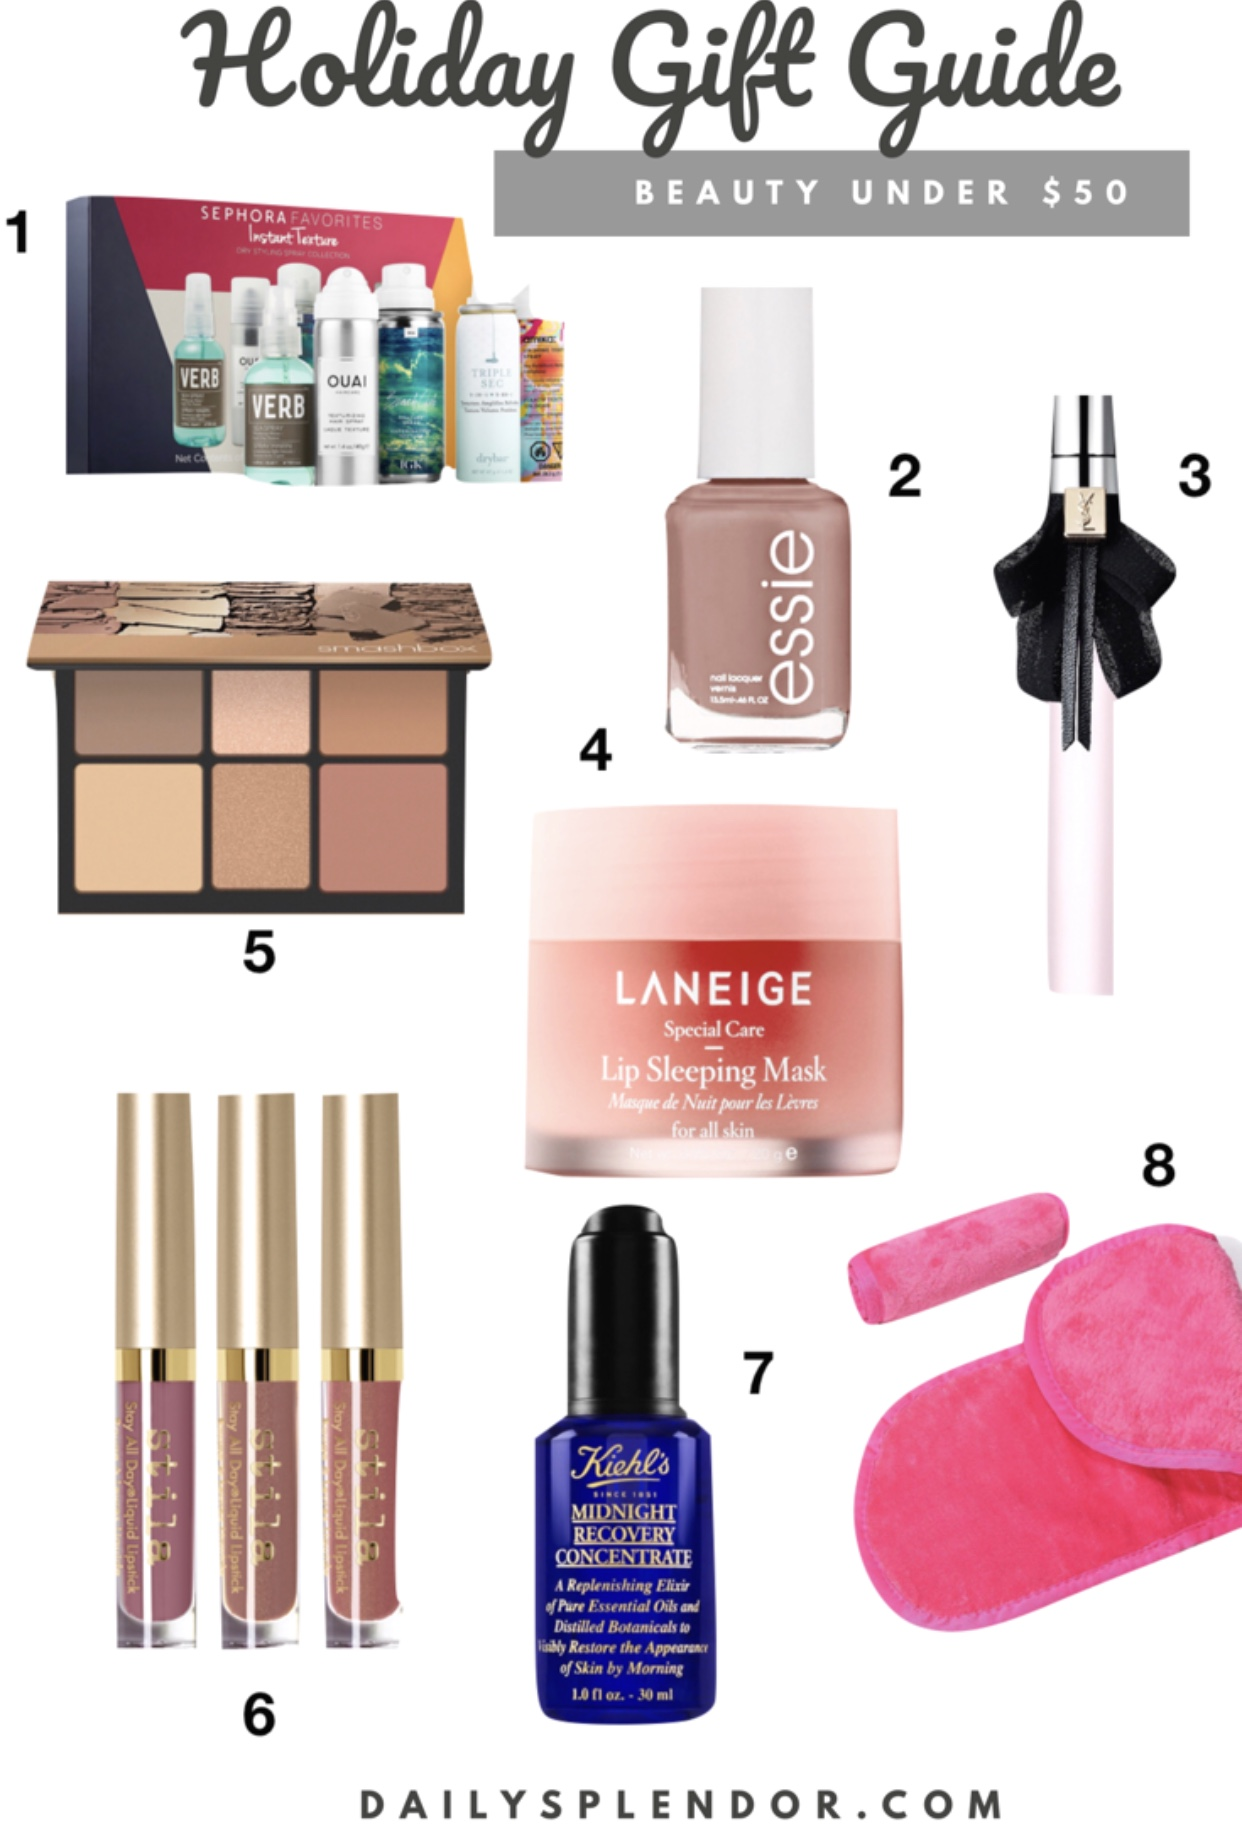 2018 Holiday Beauty Gift Guide under $50 | Daily Splendor Life and Style Blog | #giftguide #holidaygiftguide #2018giftguide #womensgiftideas #essie #stila #sephora #nordstrom #amazon #beautygifts